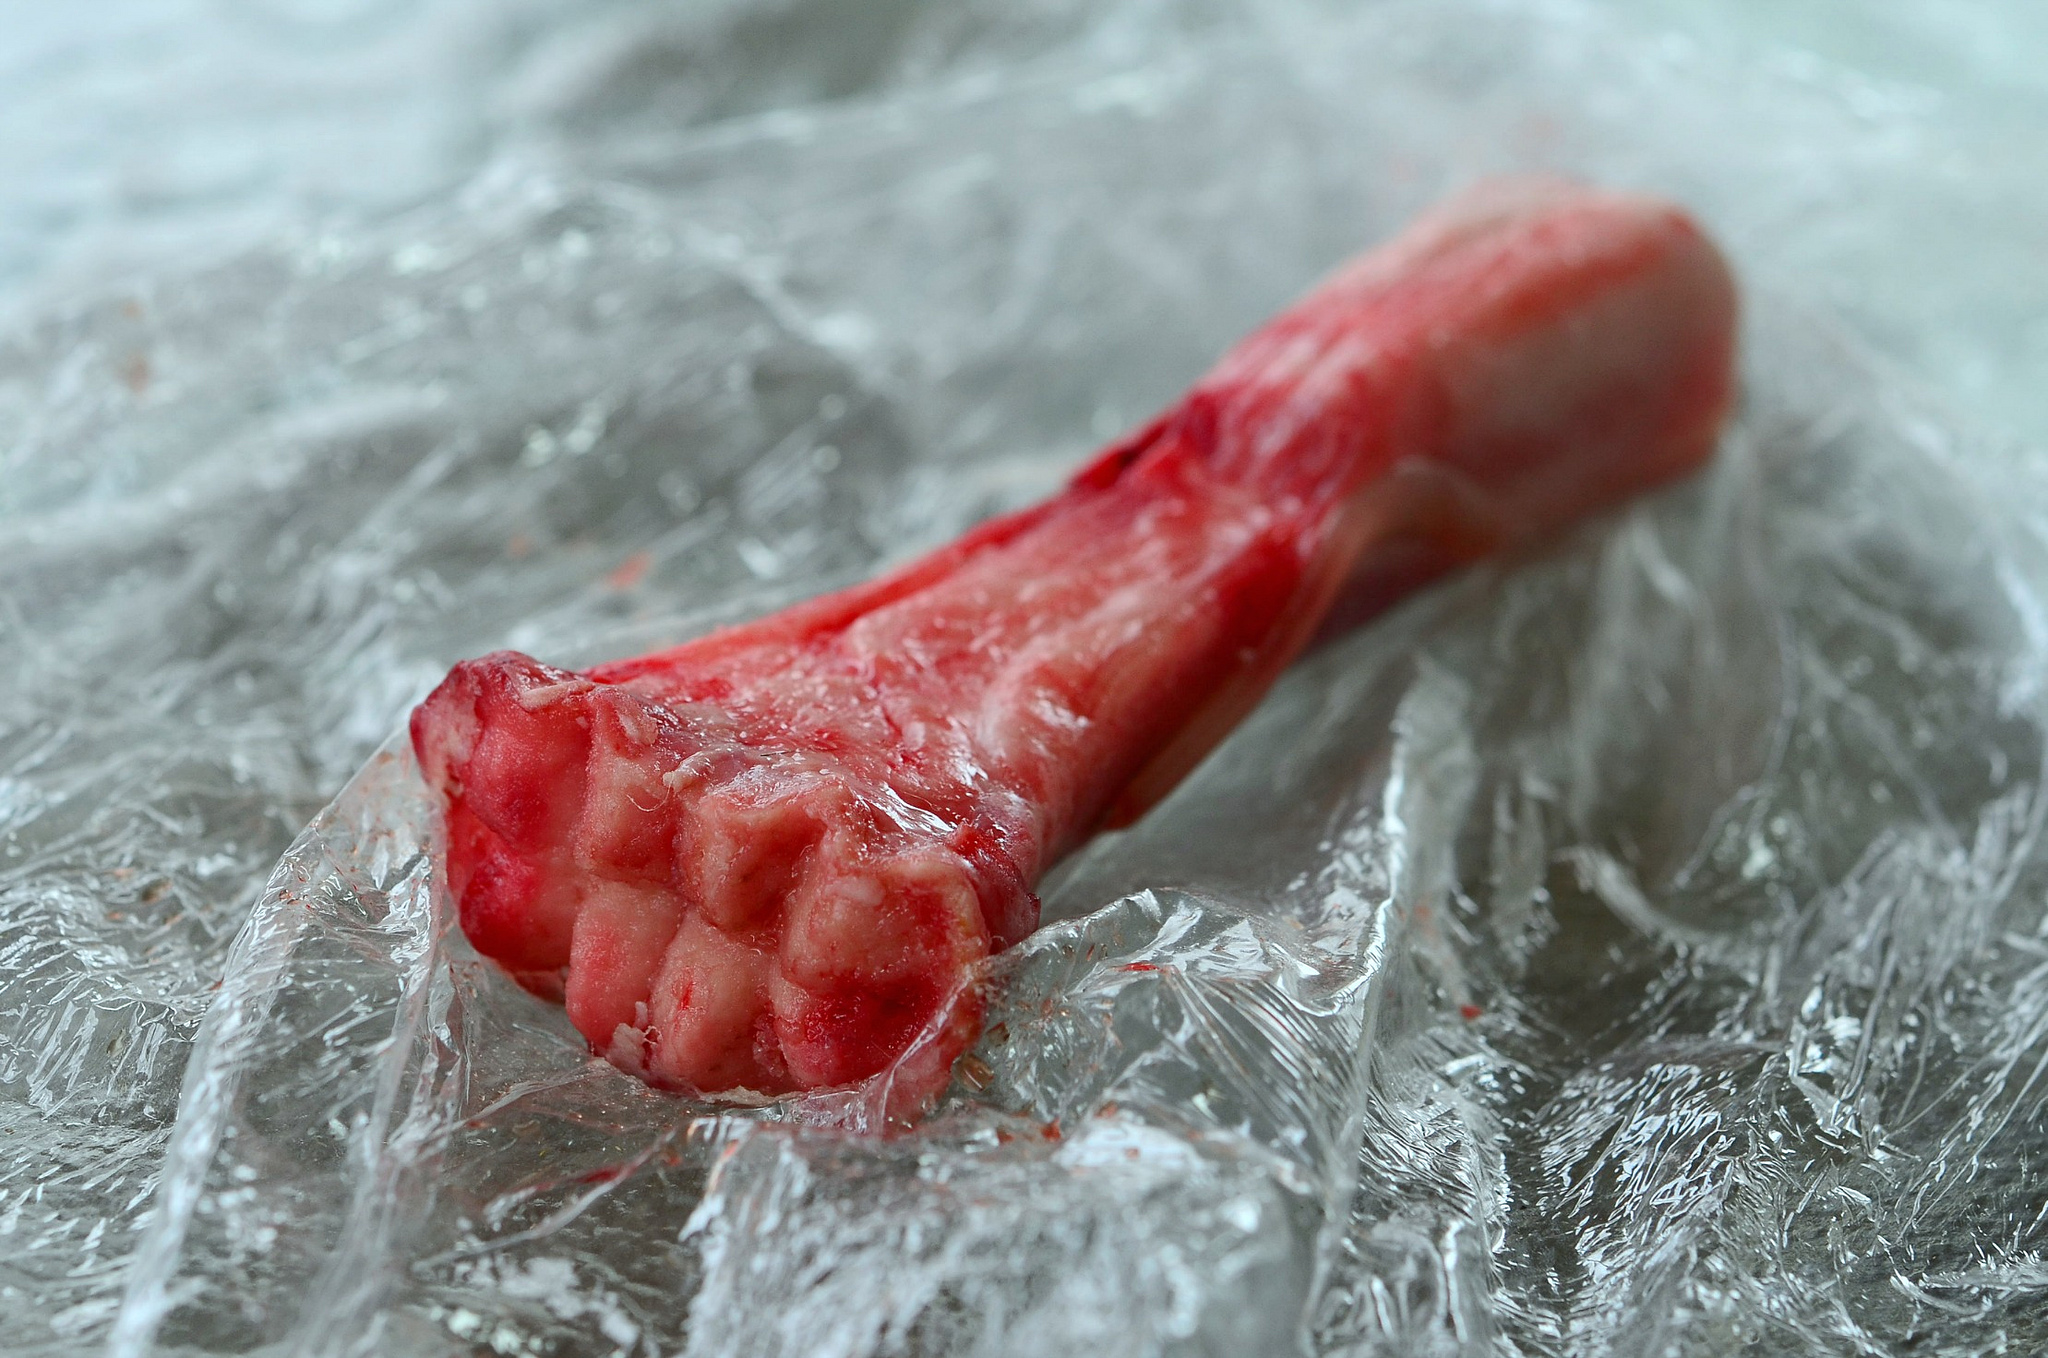 Shank Bone, photo by Flickr user SLGC